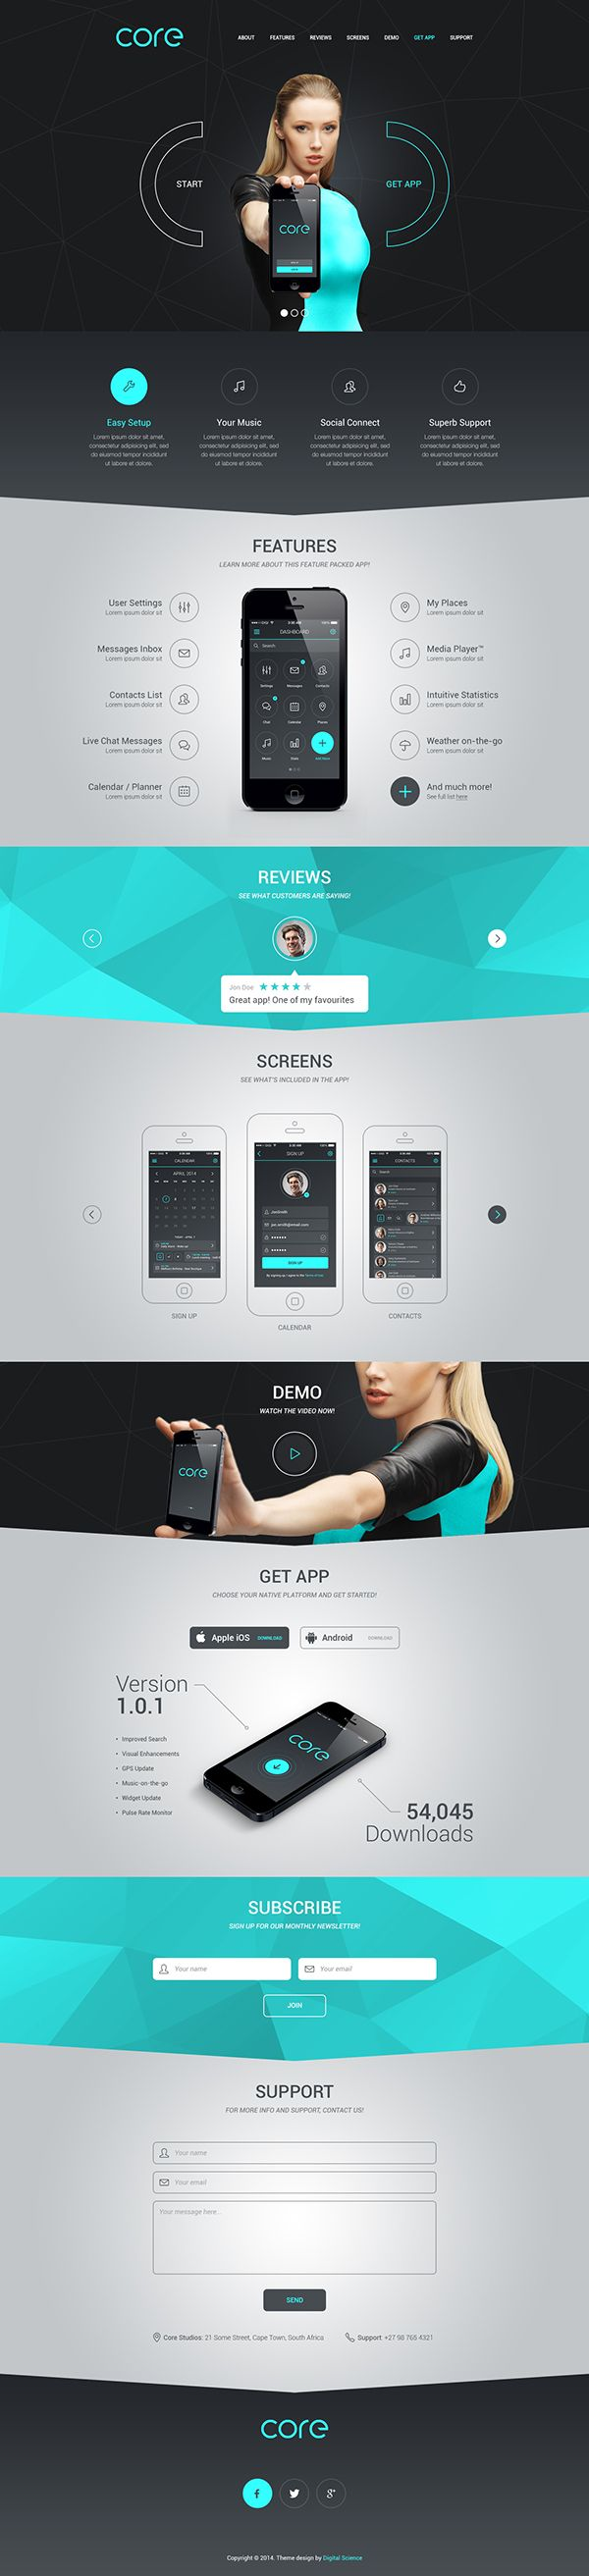 Core Mobile App Landing Theme by Pierre Marais, via Behance